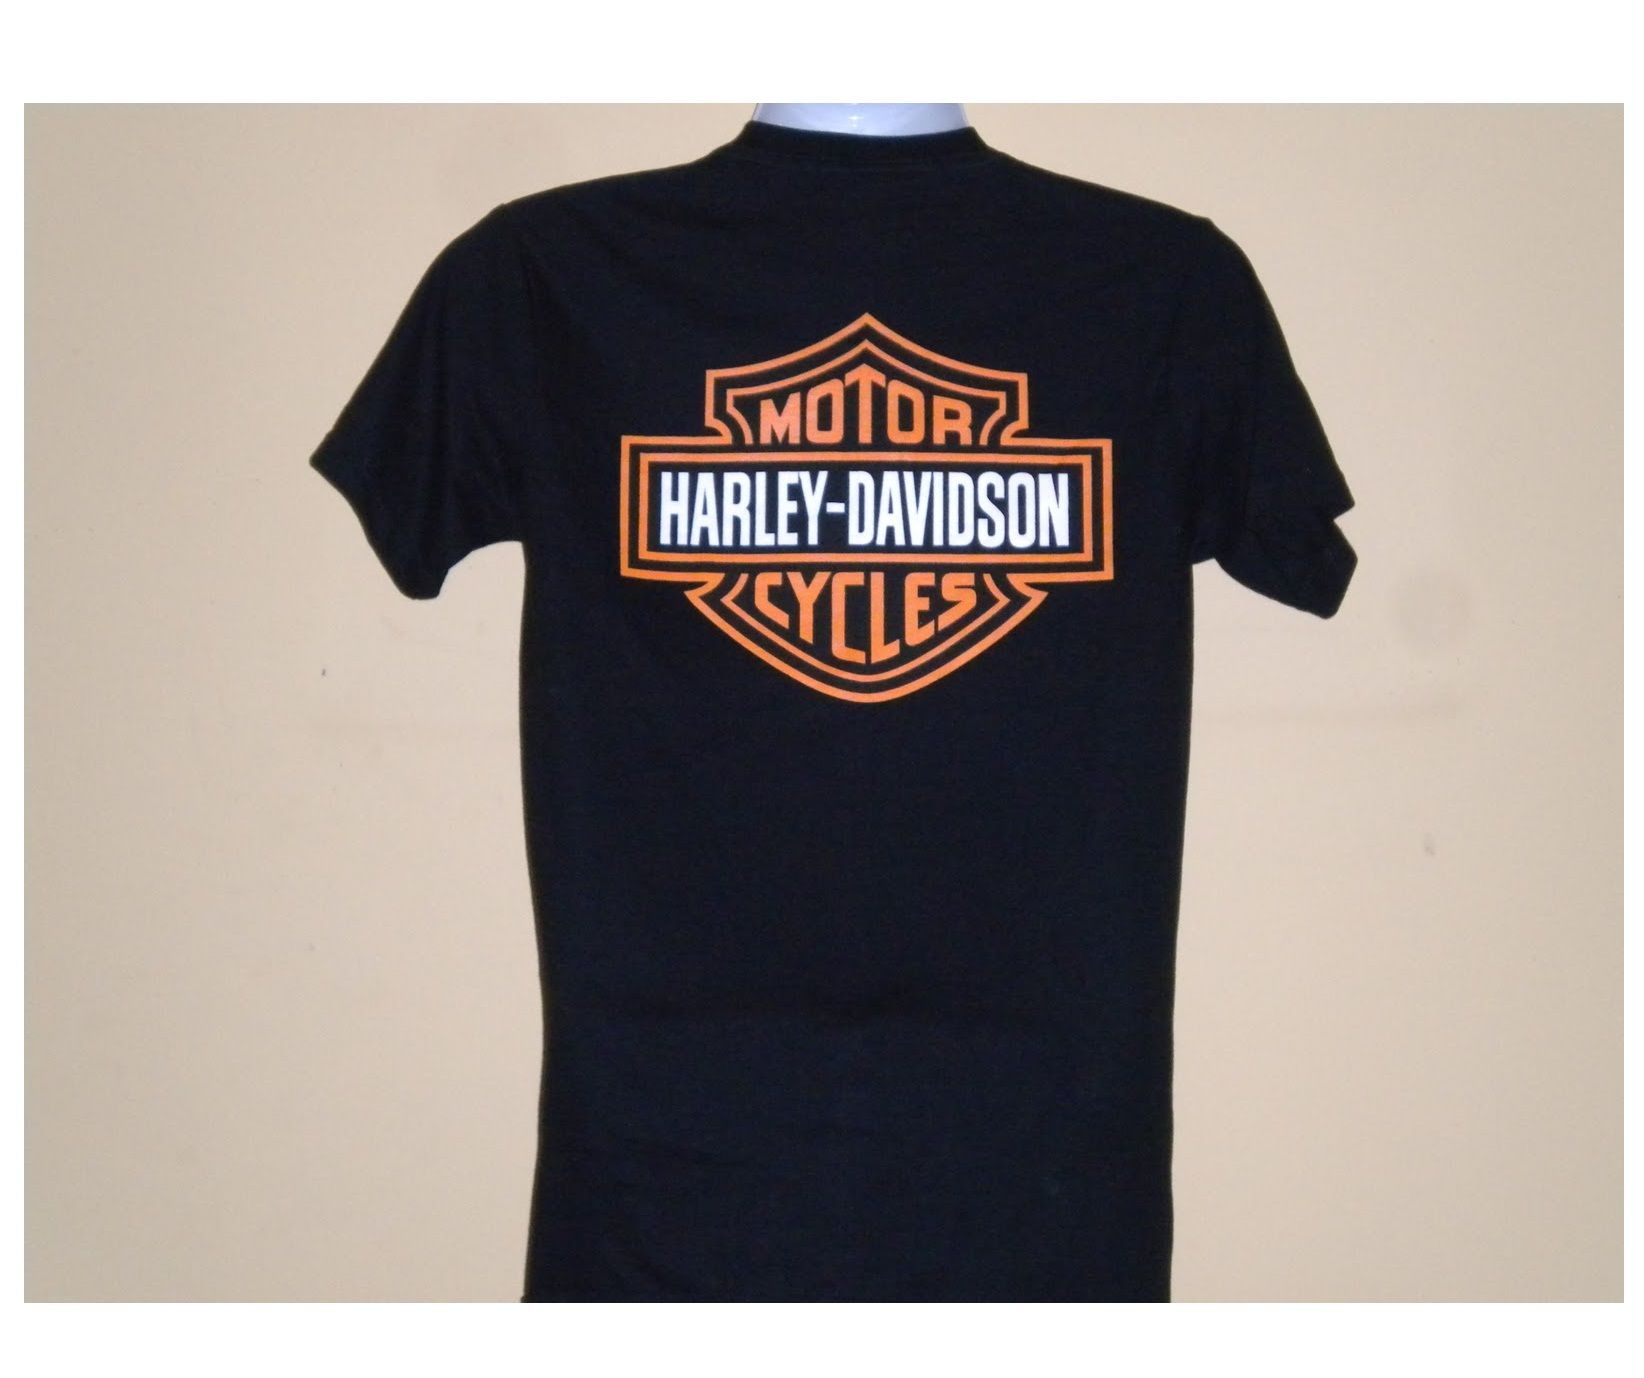 tags very cheap harley davidson motorcycle t shirts sale. Black Bedroom Furniture Sets. Home Design Ideas